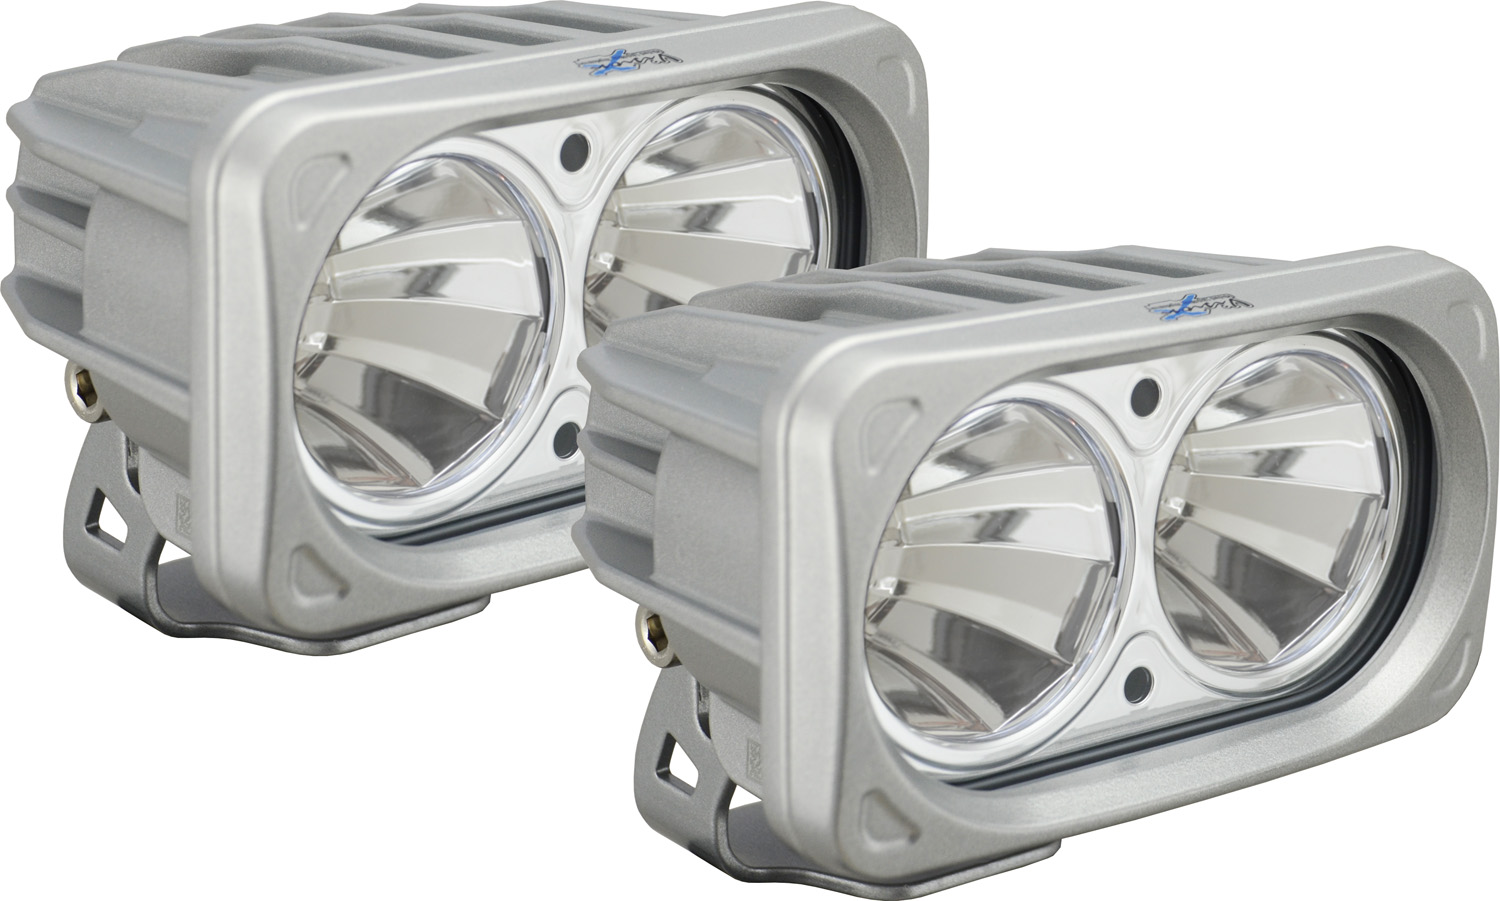 OPTIMUS SQUARE SILVER 2 10W LEDS 60° FLOOD KIT OF 2 LIGHTS